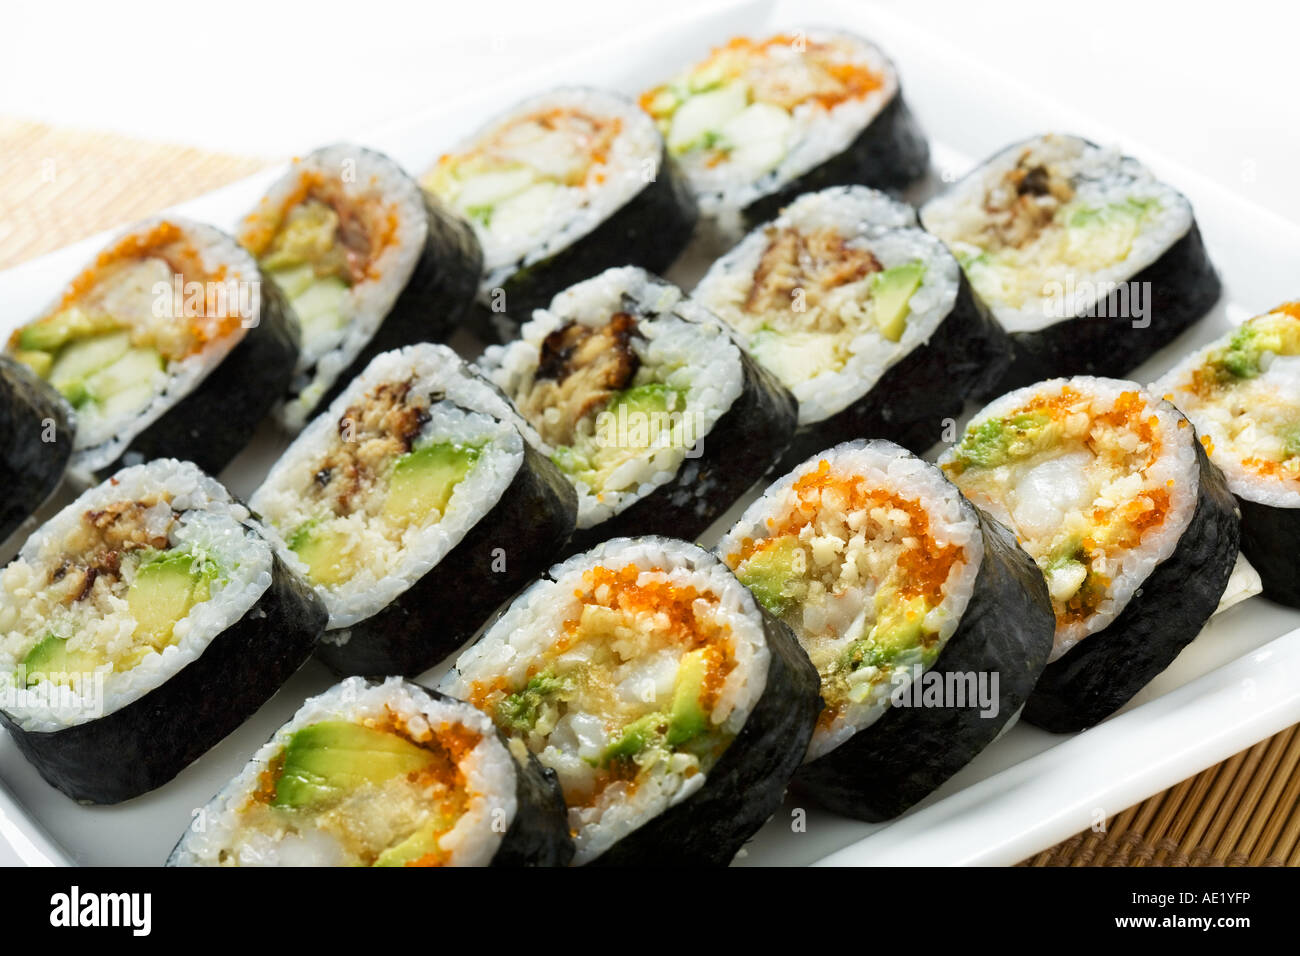 A Japanese dish consisting of sushi rolls on a serving plate. Stock Photo